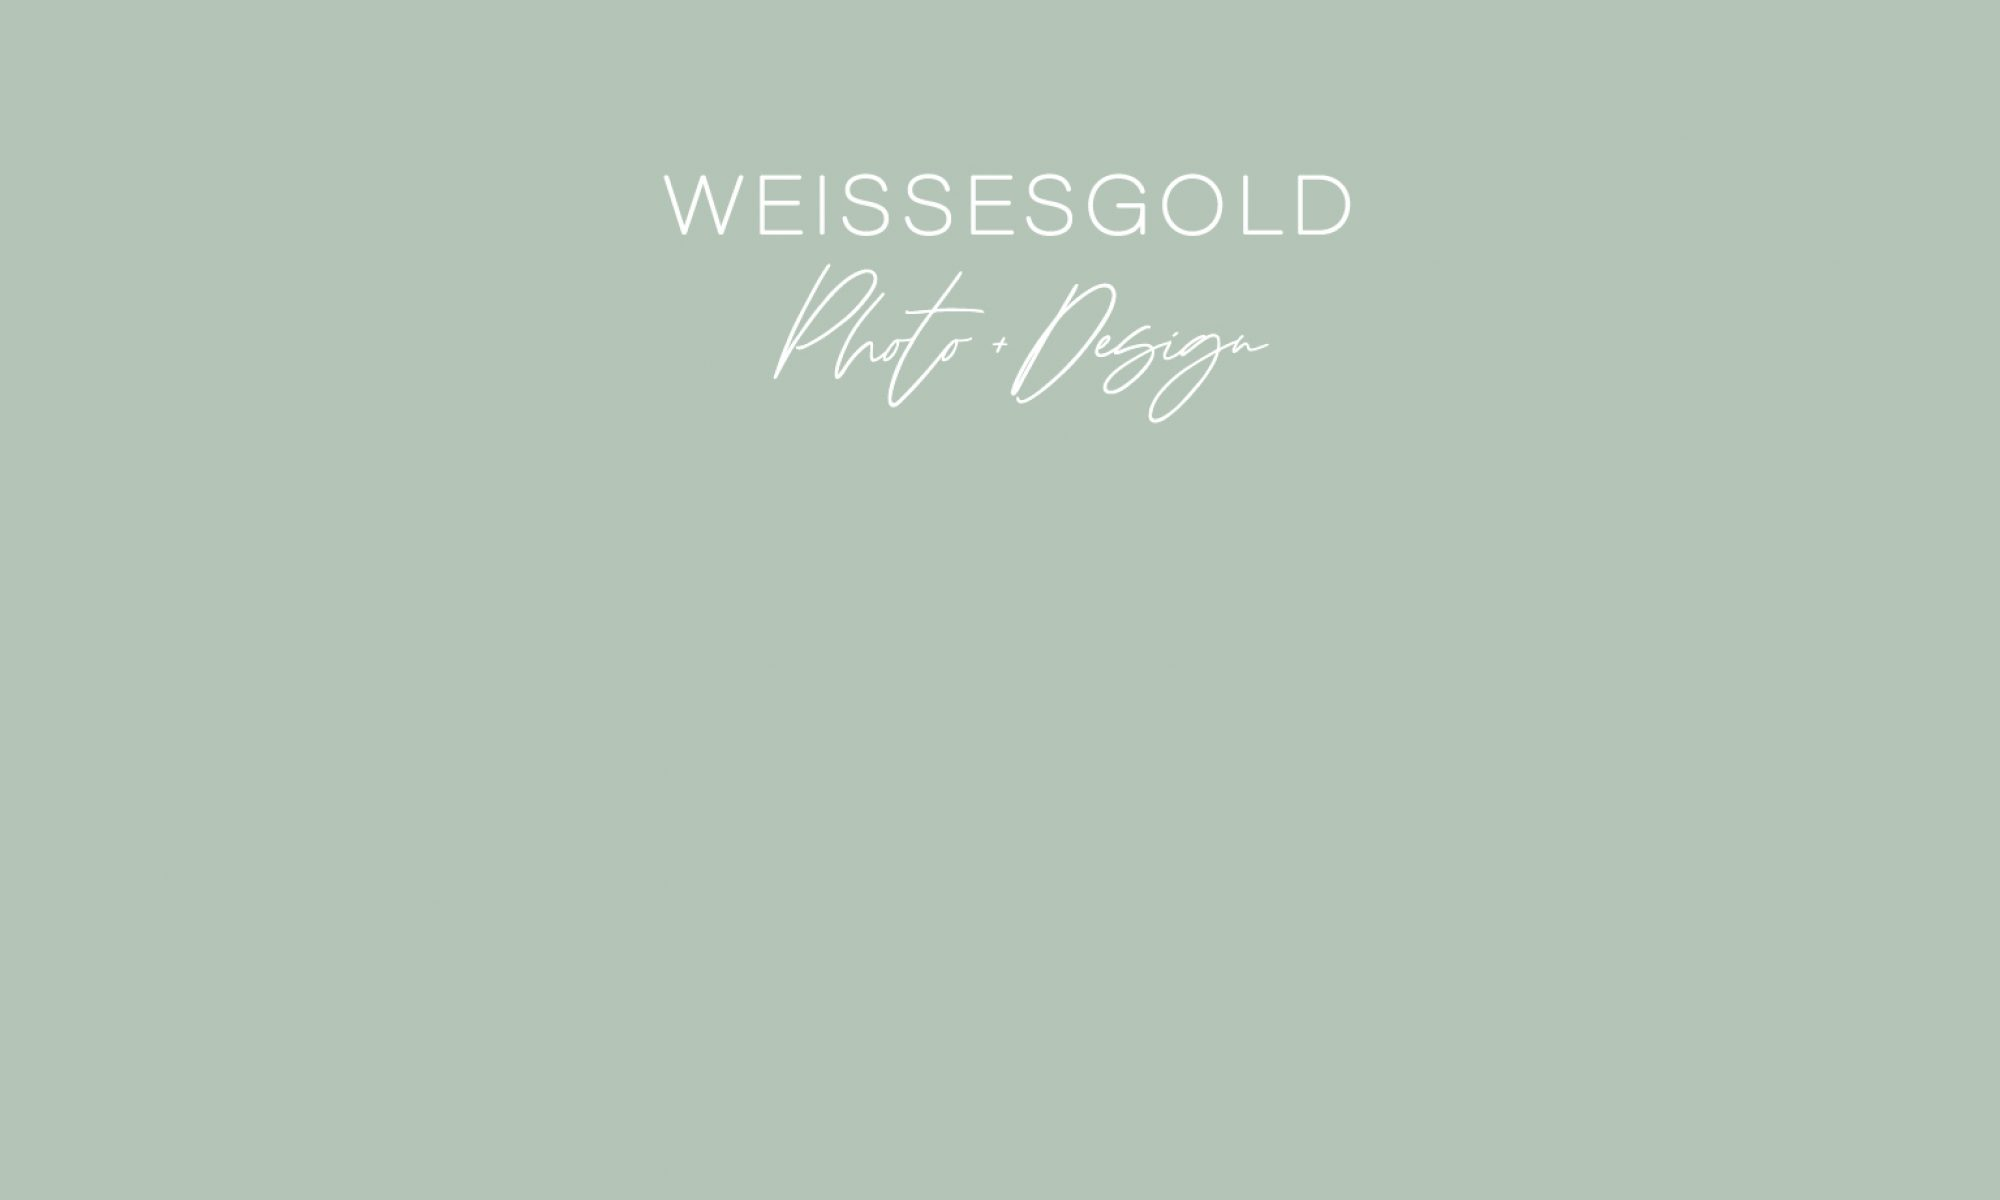 weissesgold.design